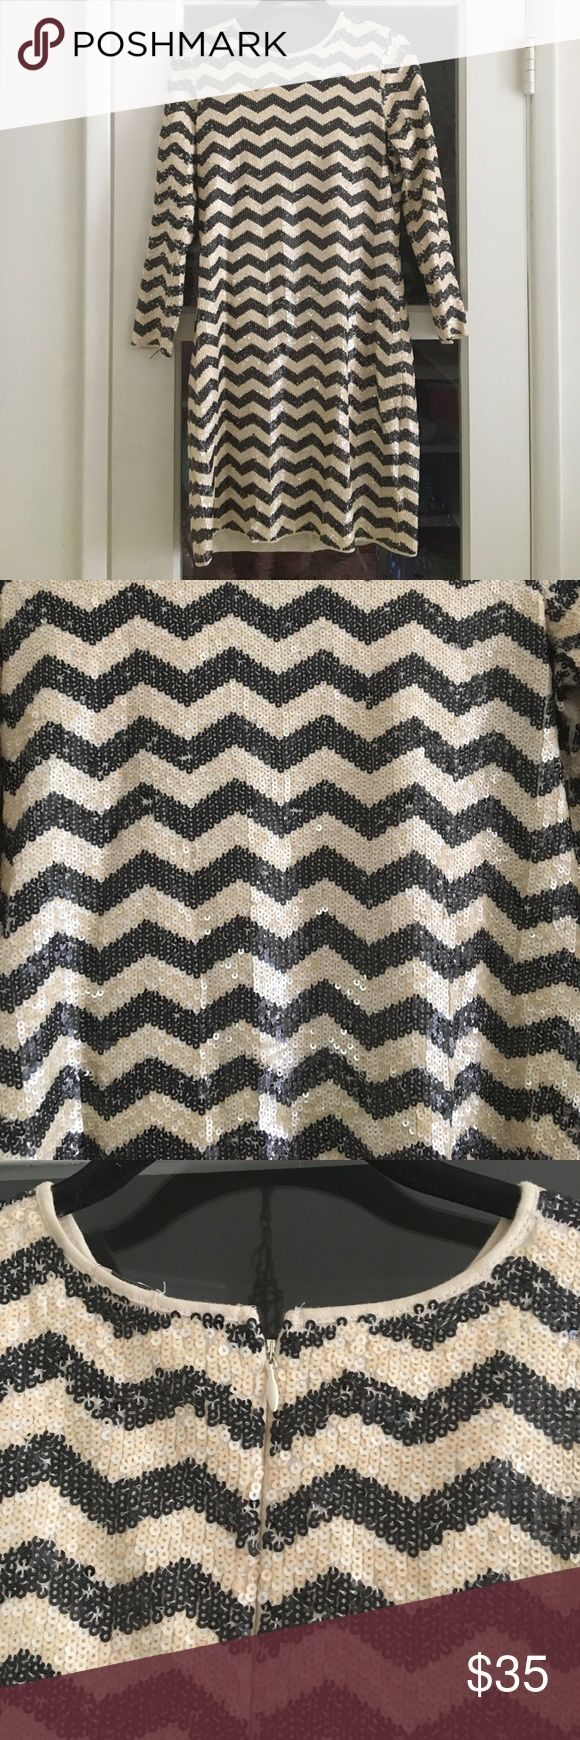 """Sequined Chevron print party dress ✨ Super fun sequined black and cream chevron print dress from J Crew circa 2012! Long sleeves. Zips in the back. No pockets. Size XS. Roughly 35.5"""" from top of shoulder to bottom hem. Worn but in great condition. J. Crew Dresses Long Sleeve"""